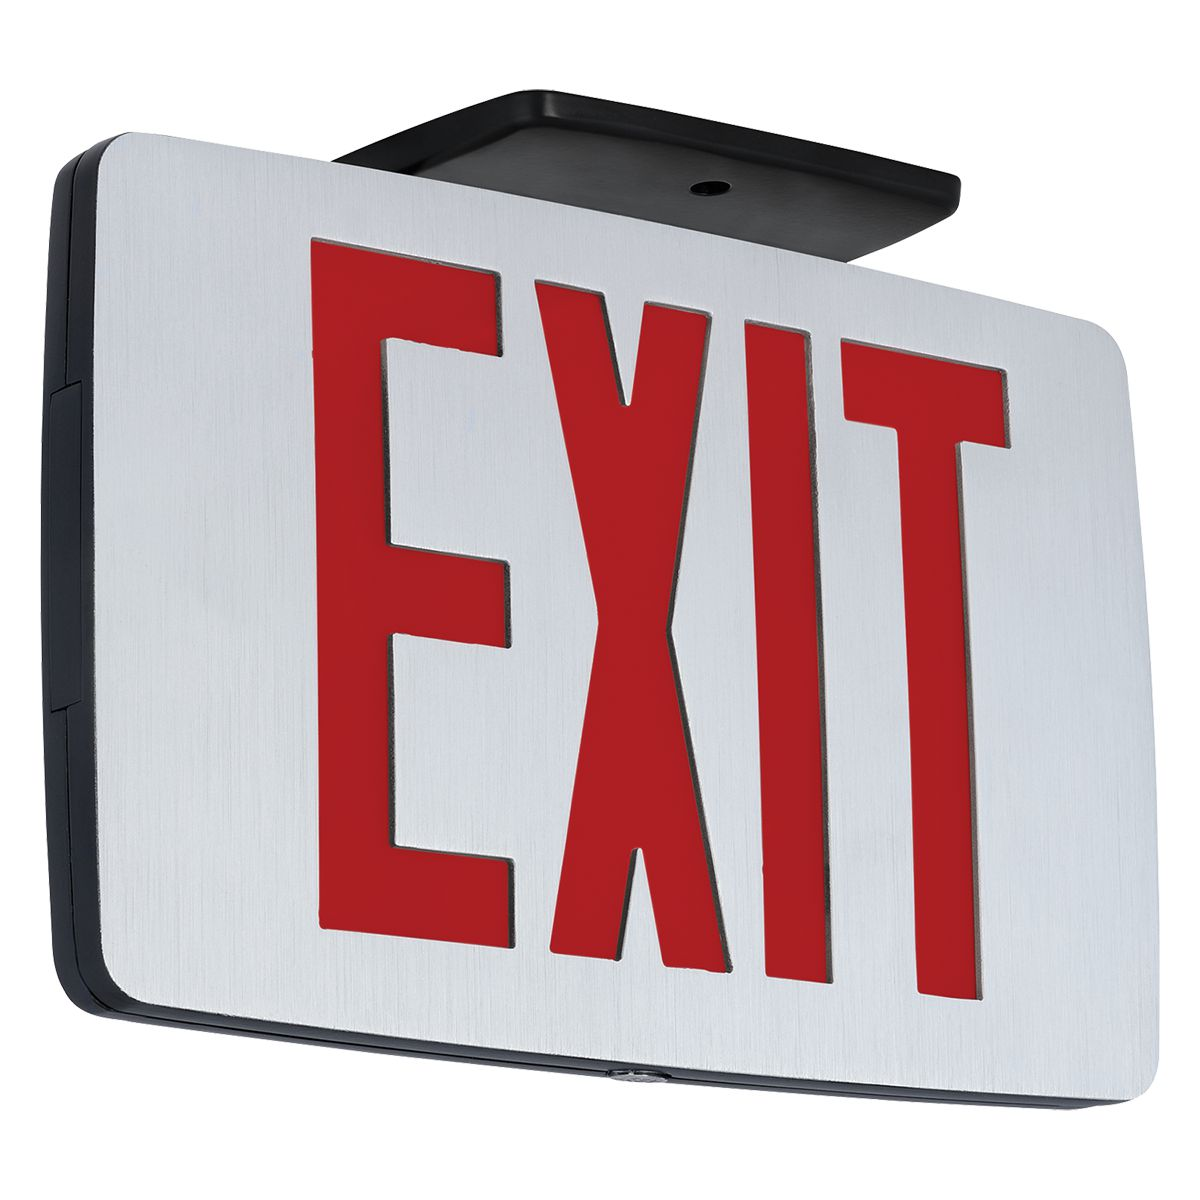 Cce Exit Message Signs Emergency Lighting Controls Products Compass